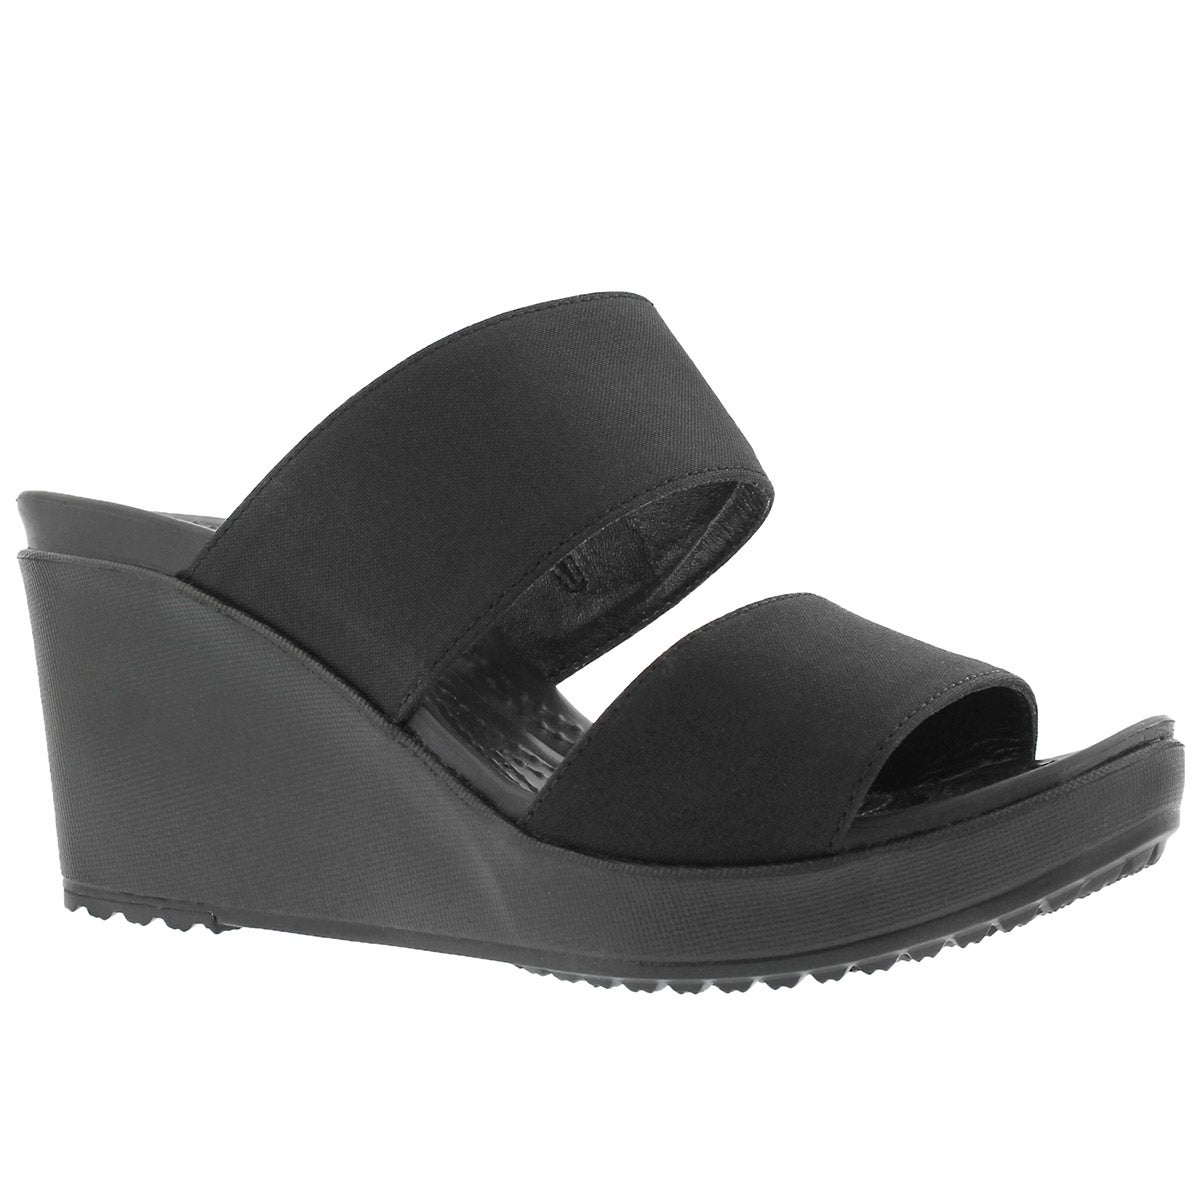 Women's LEIGH II 2-strap black wedge sandals